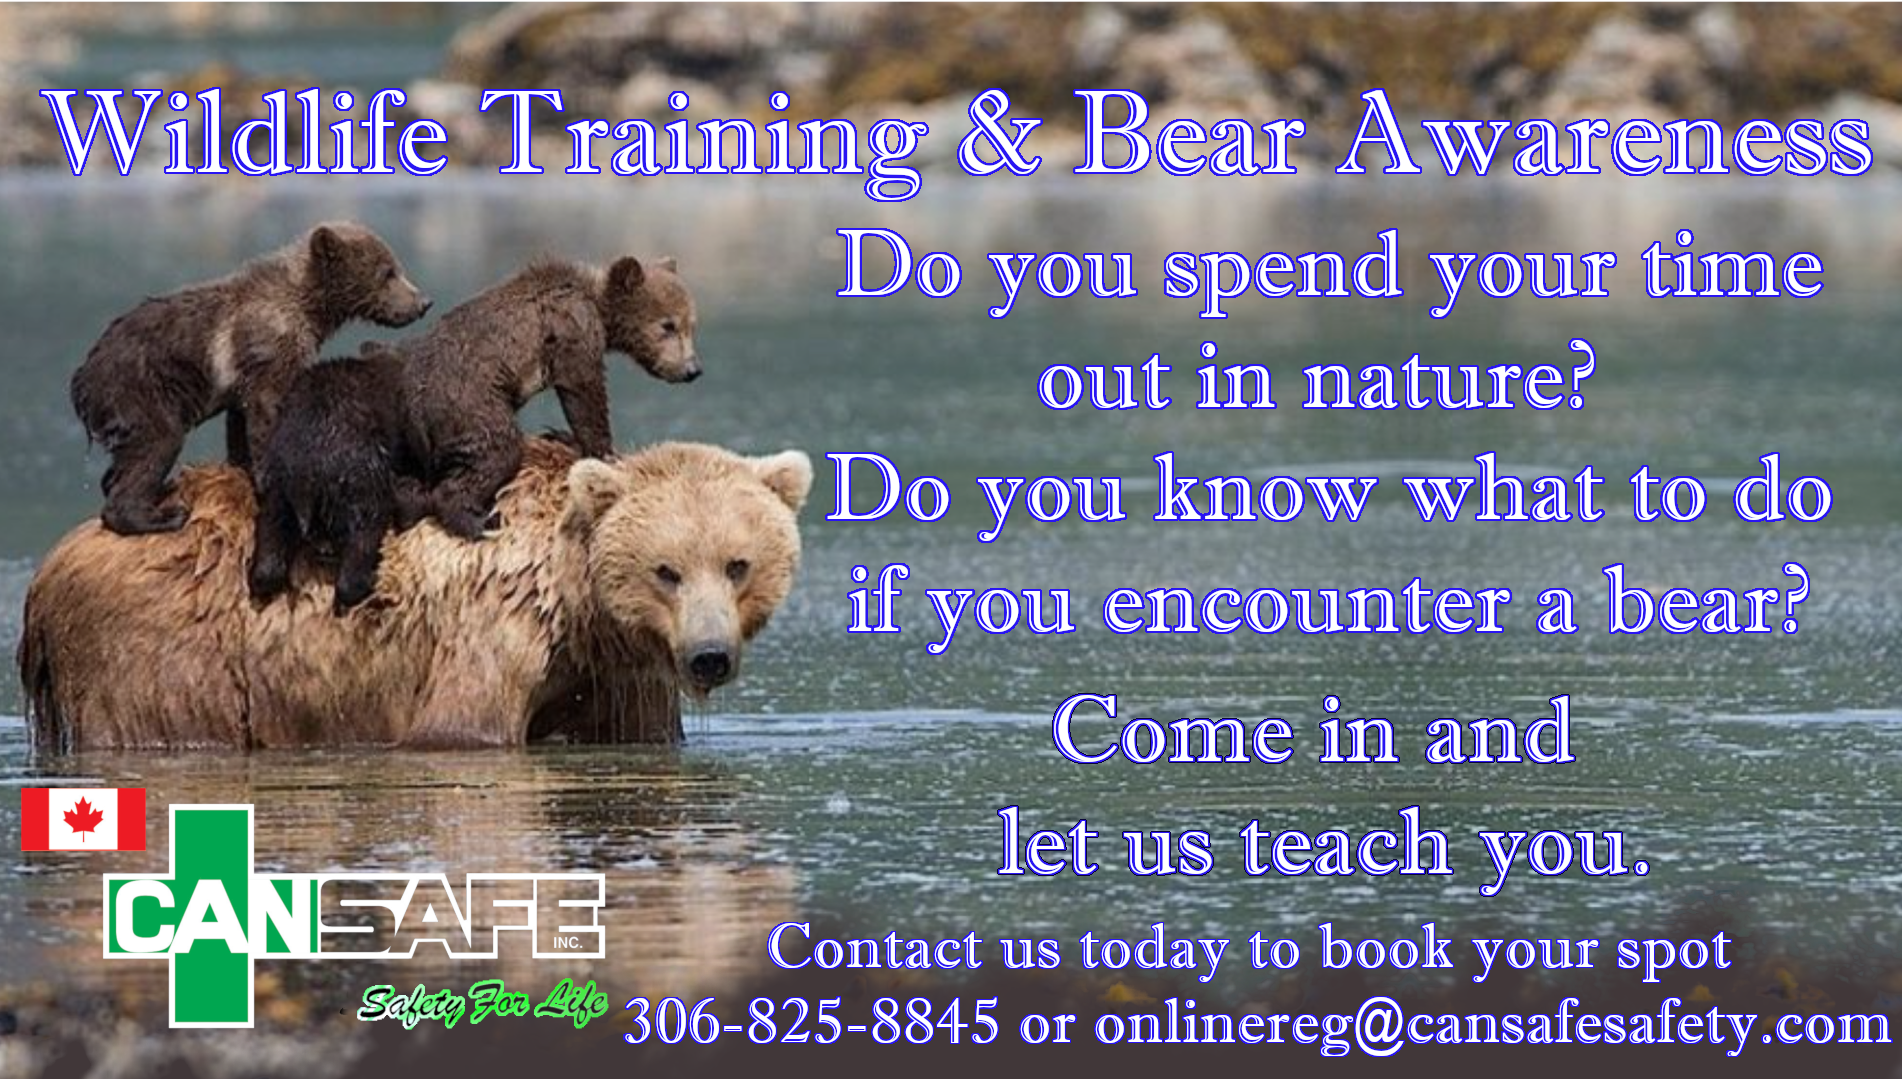 Wildlife Training & Bear Awareness